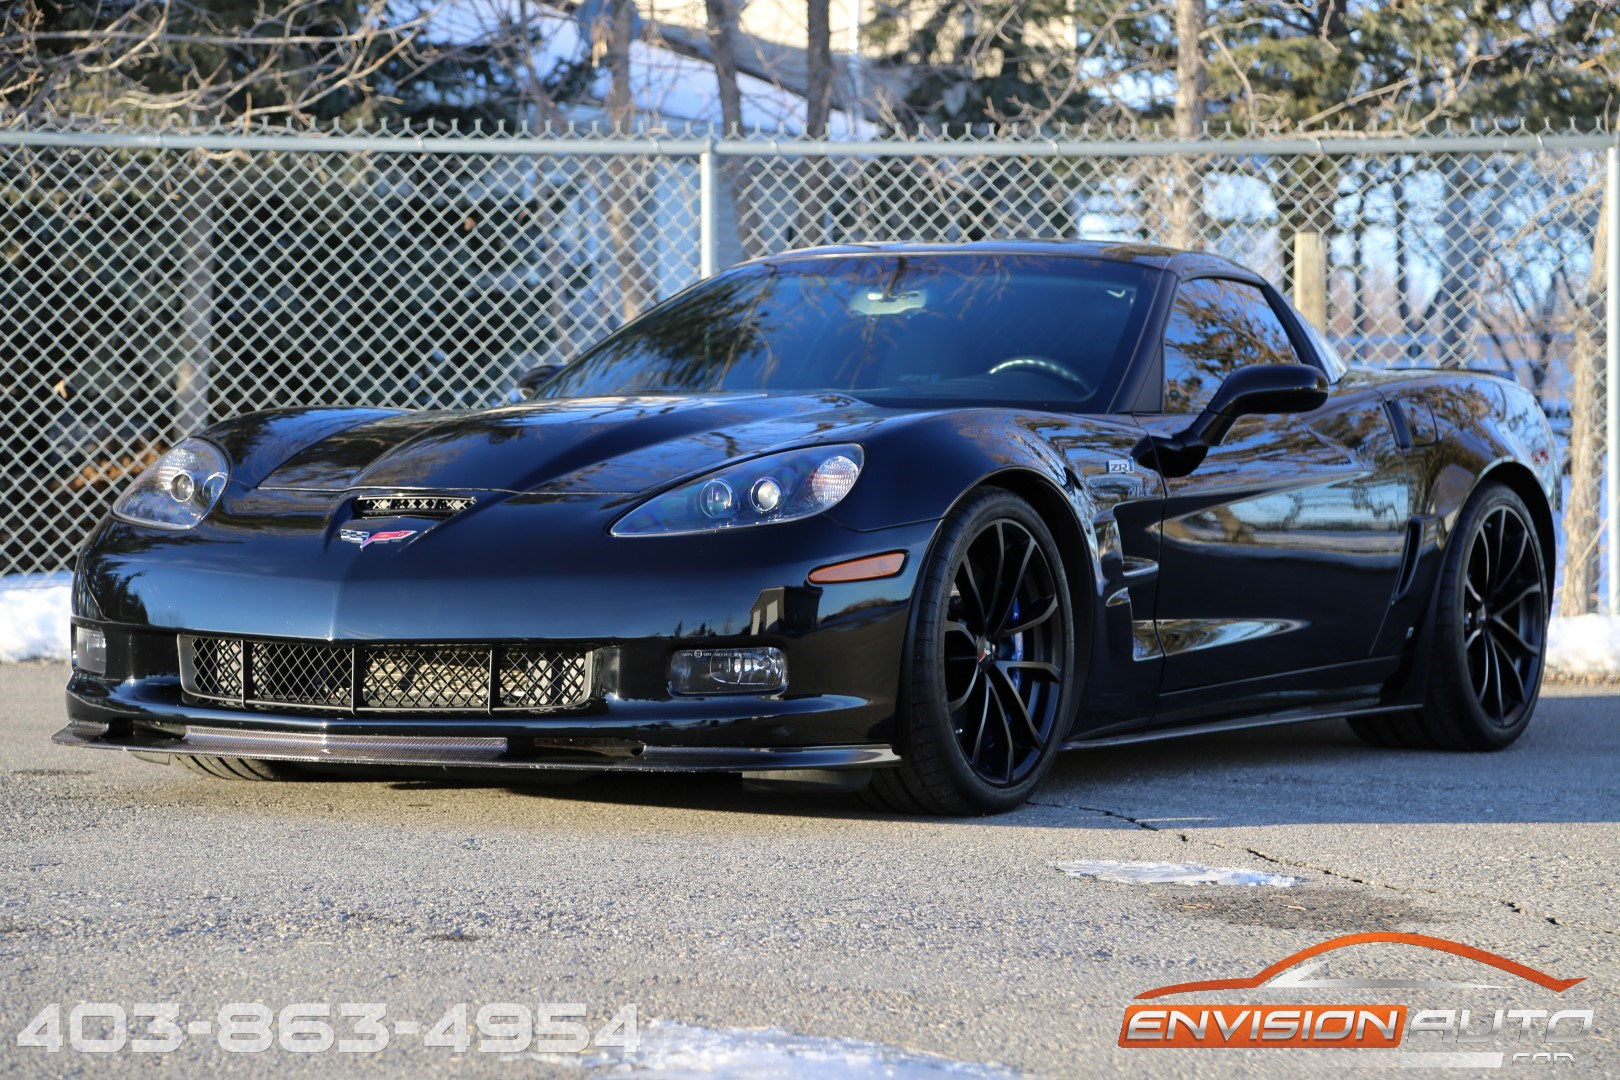 2009 Chevrolet Corvette Zr1 3zr Blacked Out Only 30 100